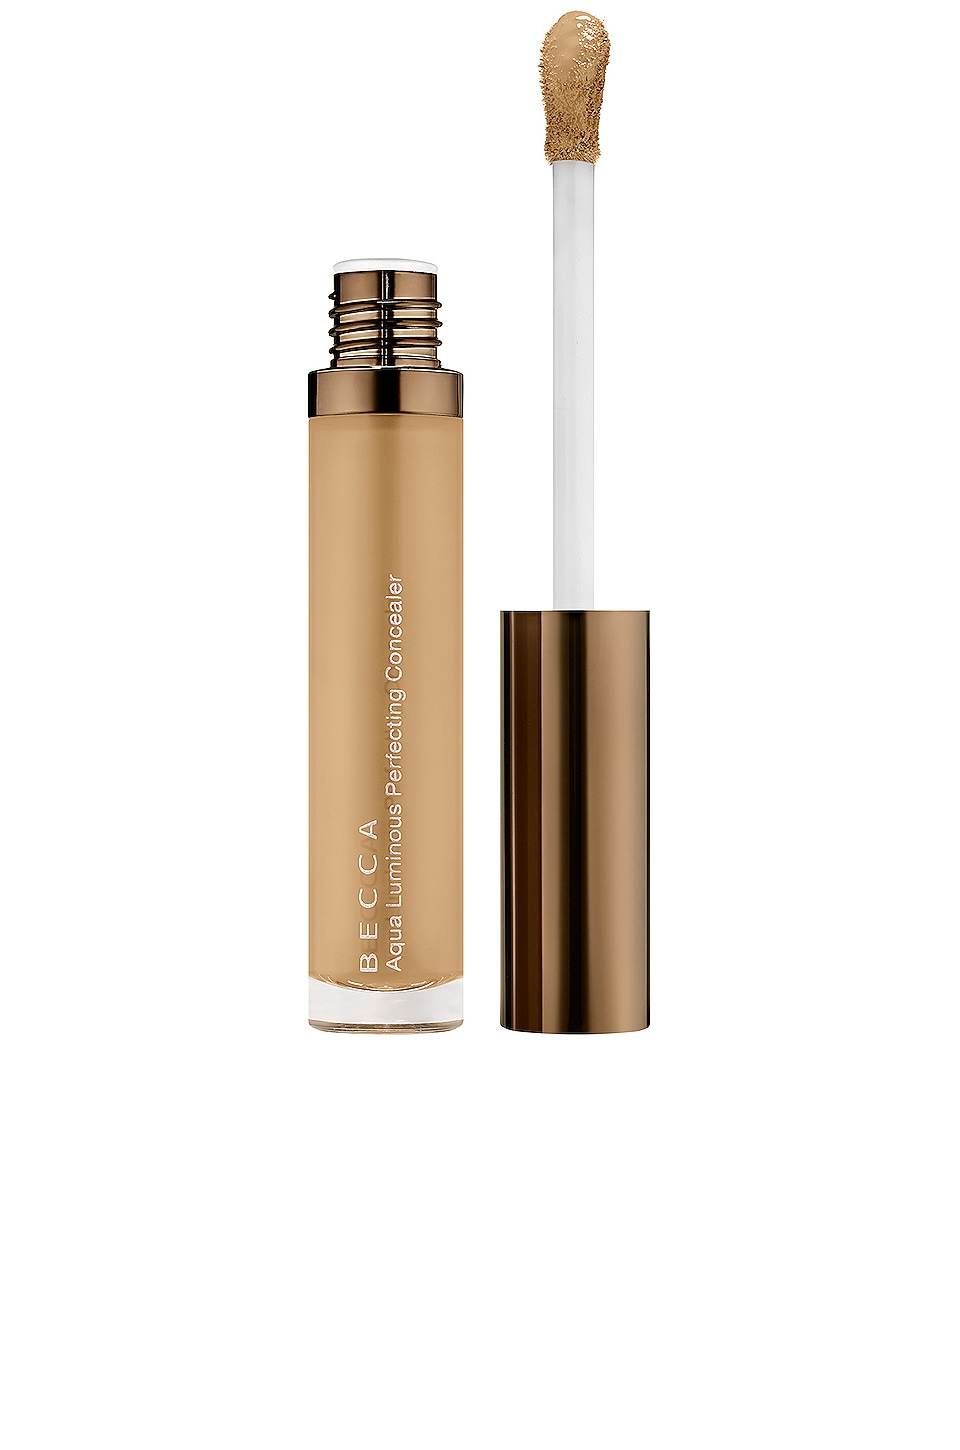 BECCA Aqua Luminous Perfecting Concealer in Medium